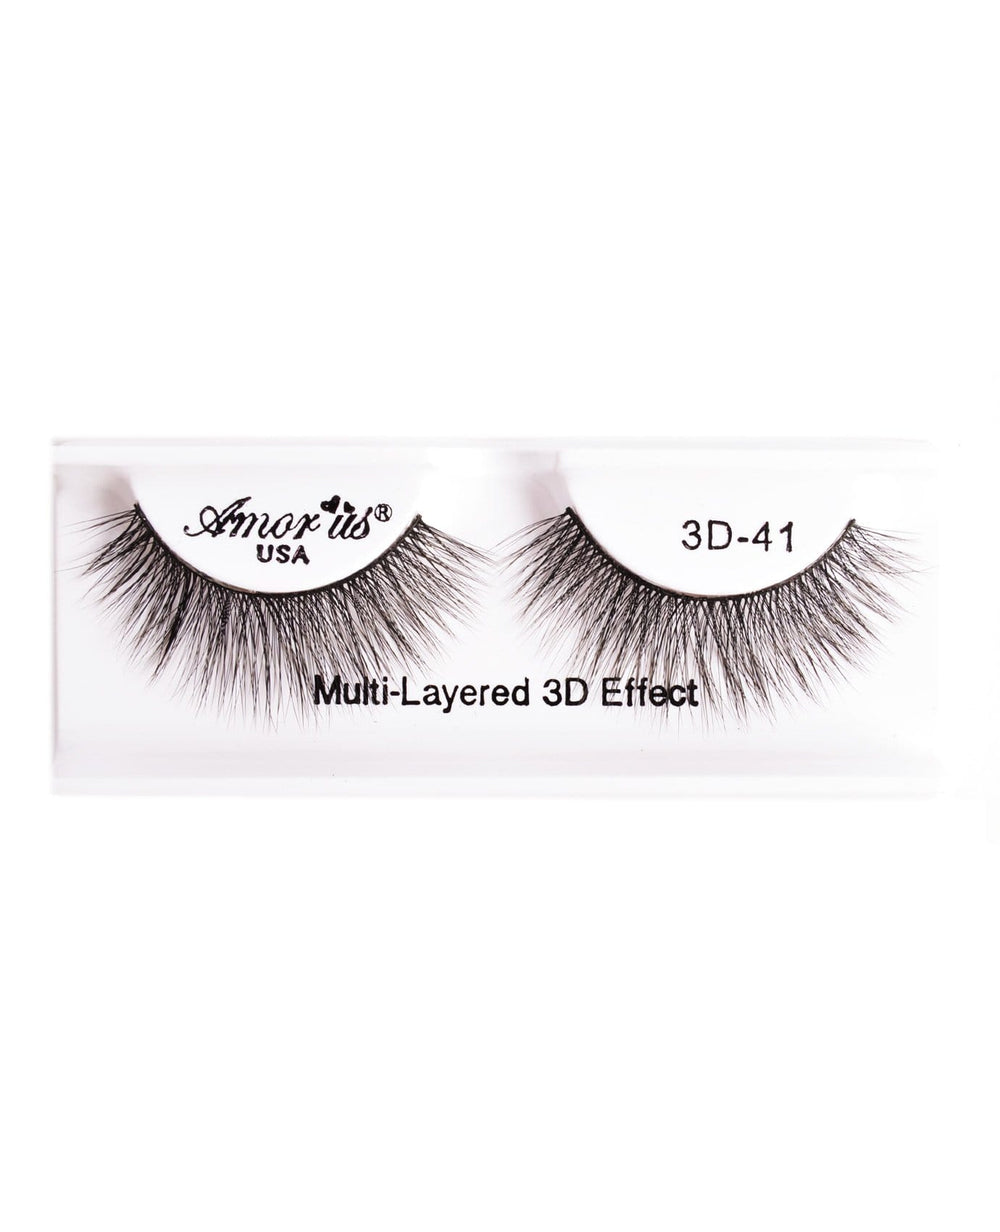 Amor Us 3D Faux Mink Eyelashes- 41, Eyelash